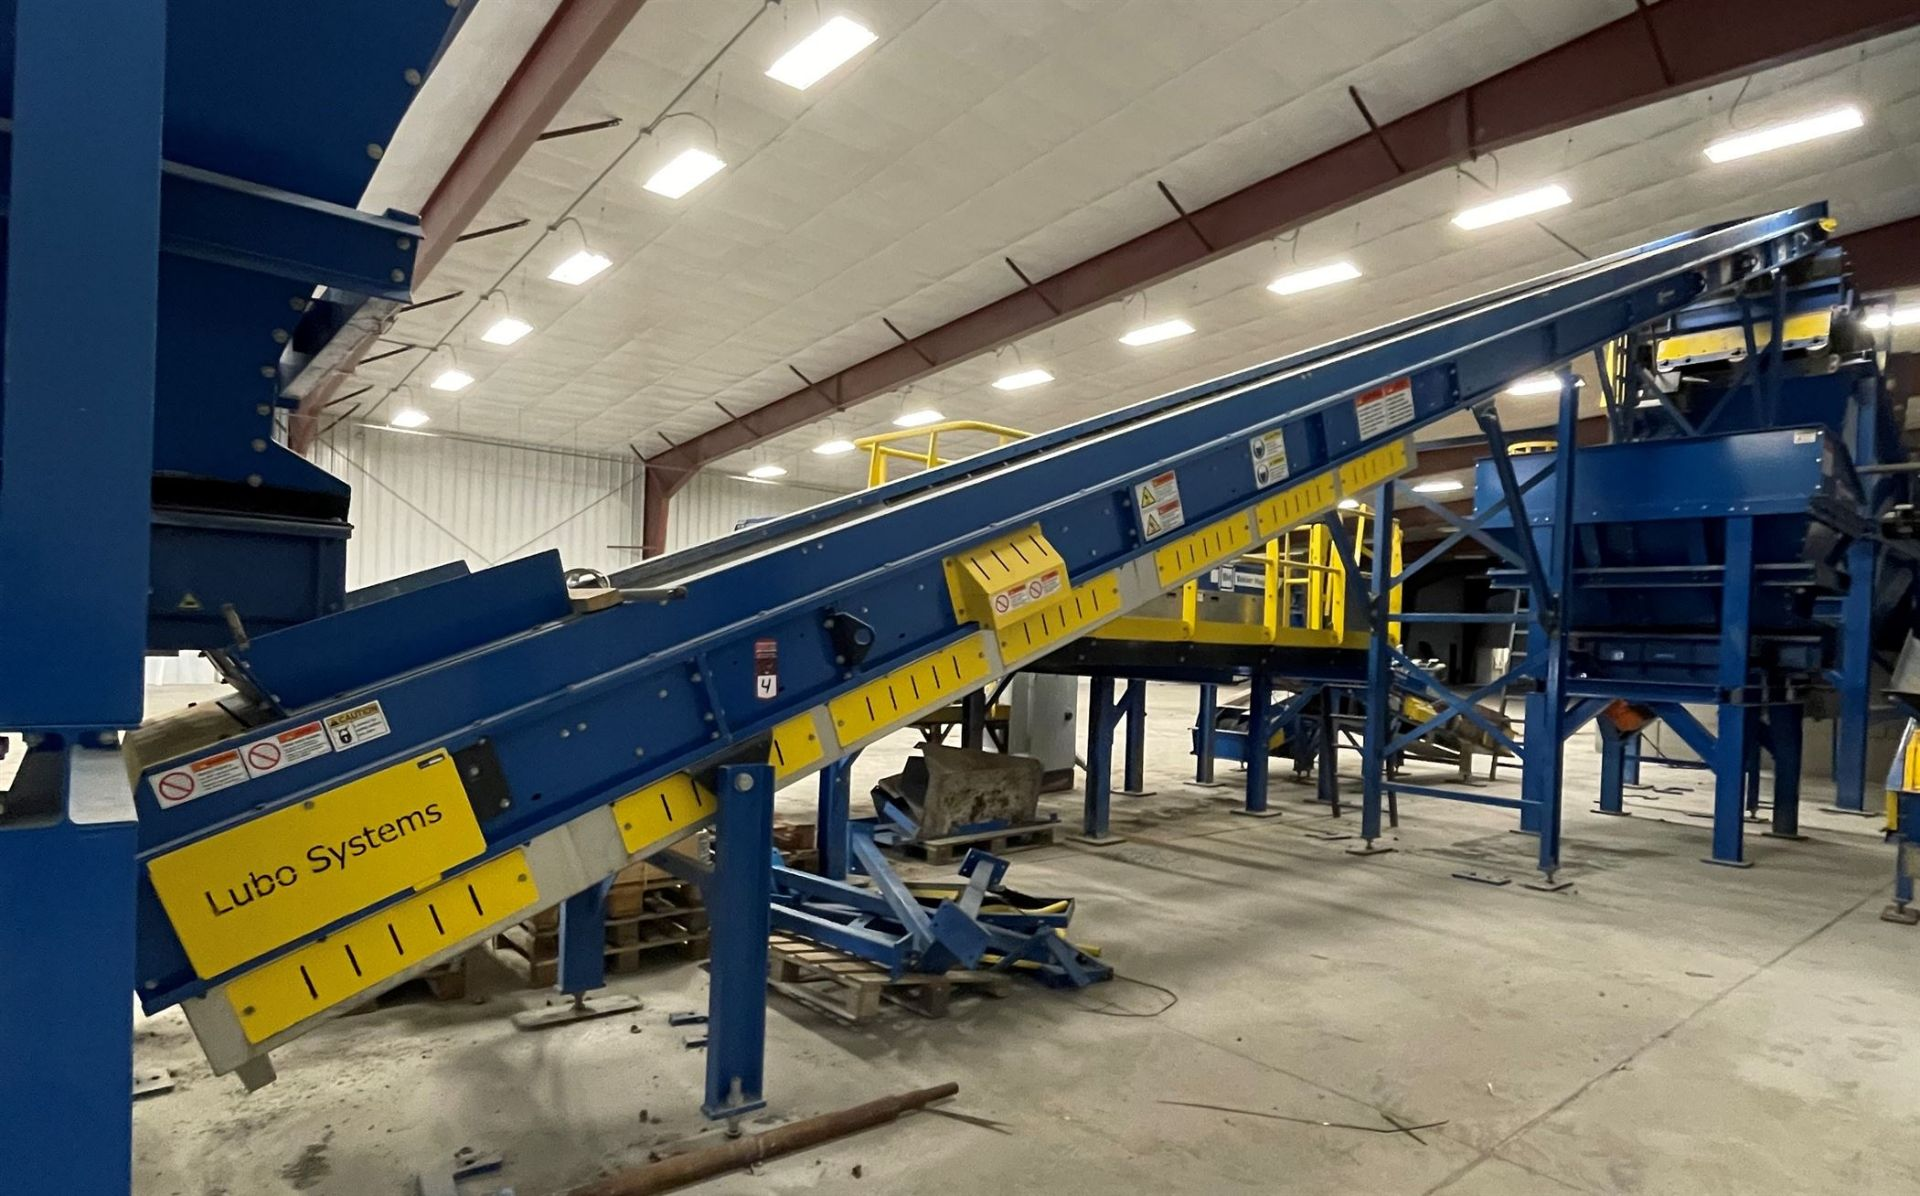 2015 LUBO SYSTEMS TBL 1000x15000 Inclined Belt Conveyor, s/n 800108-0040, 1000mm x 5000mm, SEW 3.7 - Image 2 of 5